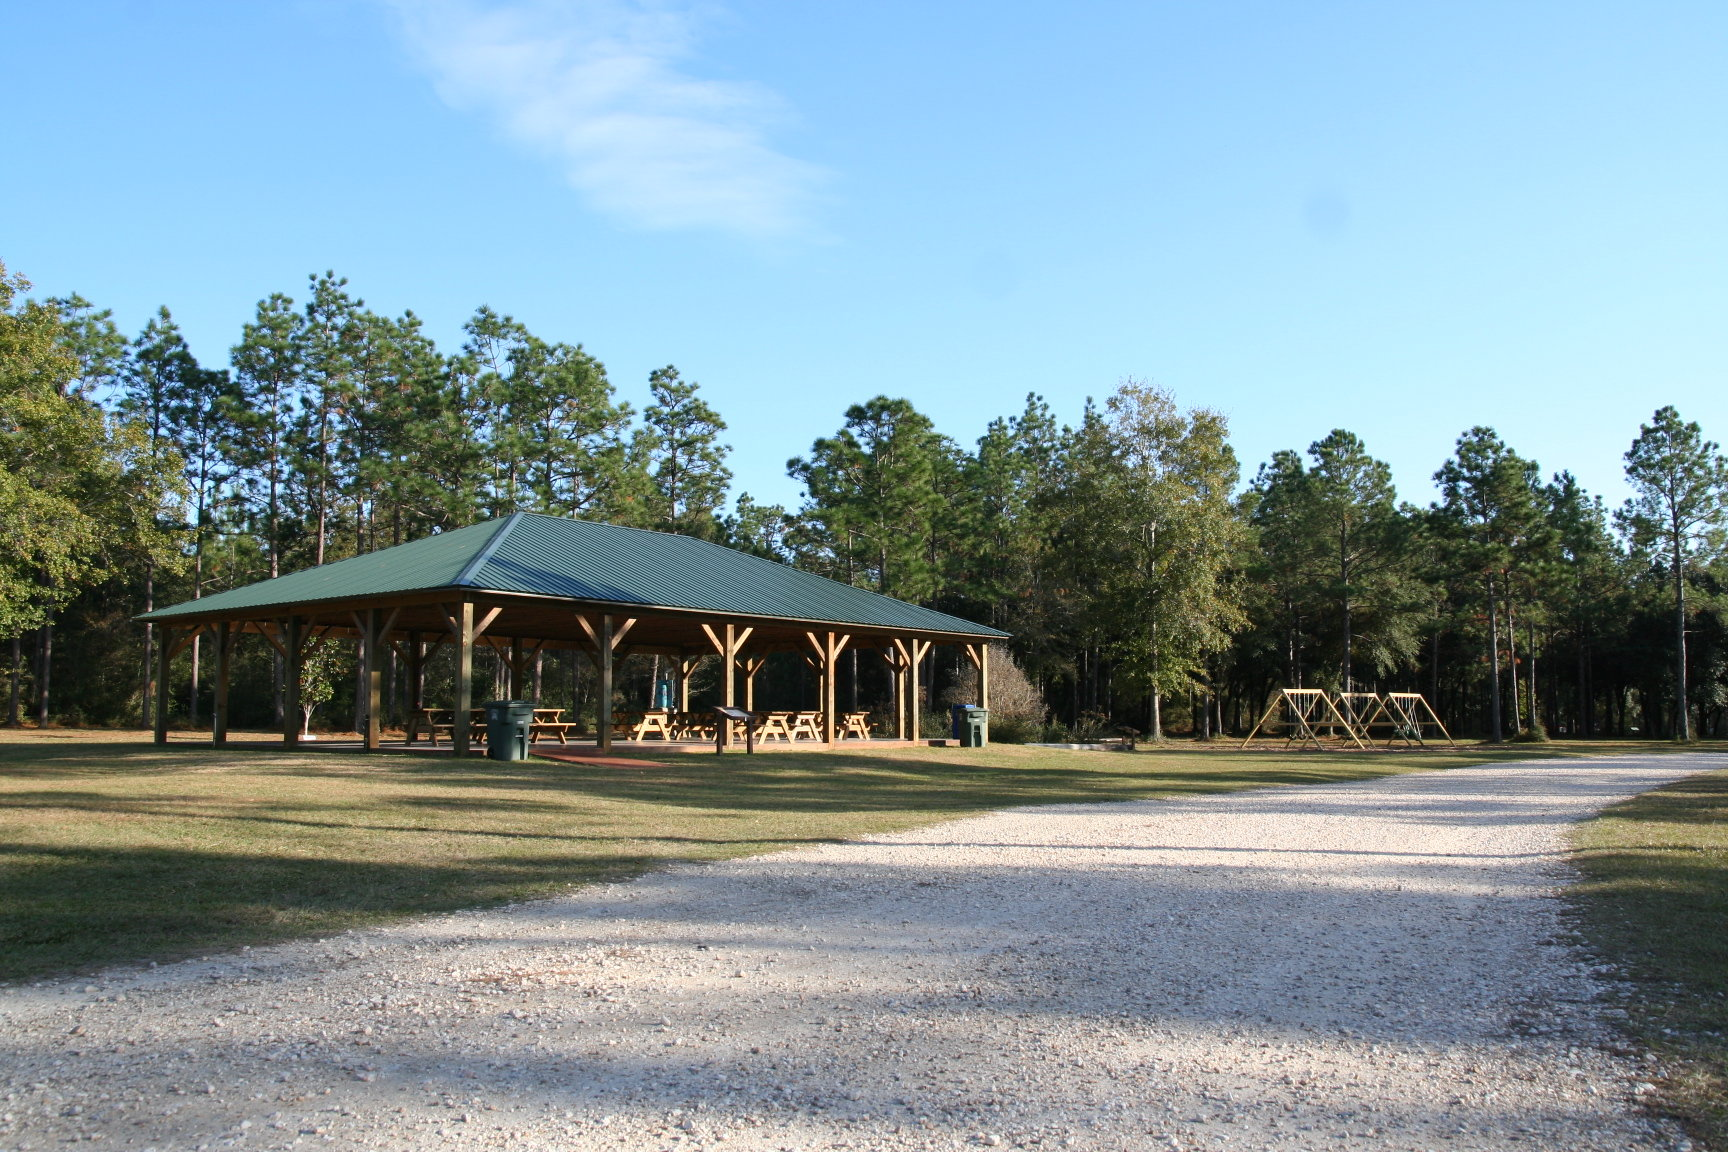 graham-creek-nature-preserve-pavilion-in-foley-dec-2-2013-6ea1f21ec6ffe3ee